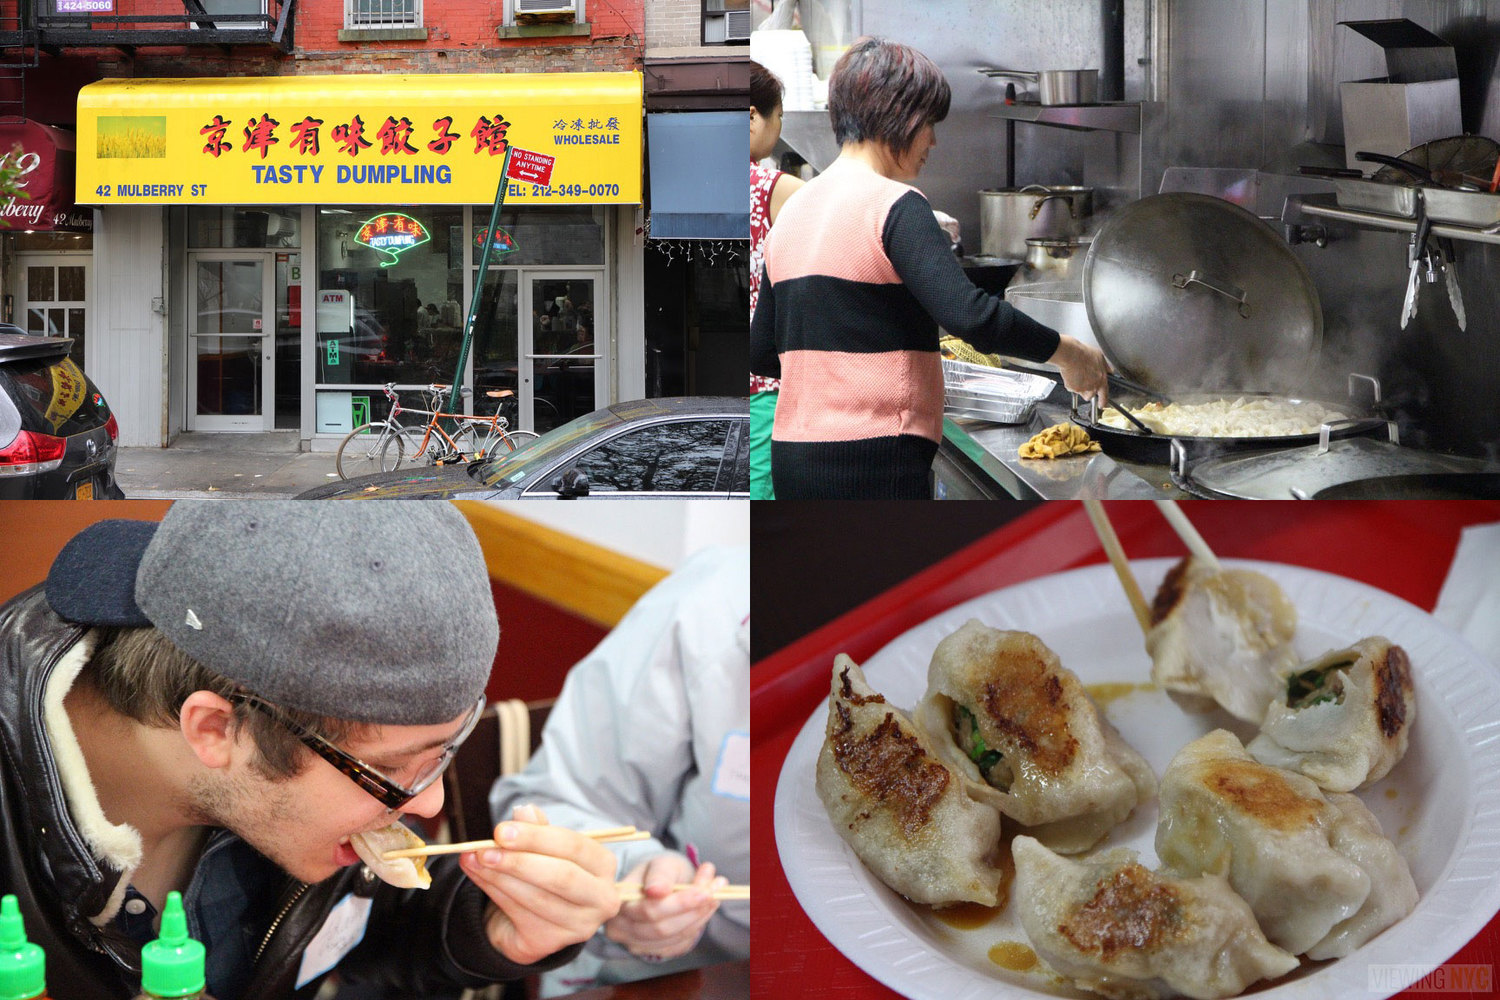 "Tasty Dumpling | Check out Viewing NYC for more info on the 2015 Chinatown Dumpling Crawl and to see who won!  <a href=""https://viewing.nyc/the-best-dumpling-in-the-2015-viewing-nyc-chinatown-dumpling-crawl-is/"" rel=""nofollow"">viewing.nyc/the-best-dumpling-in-the-2015-viewing-nyc-chi...</a>"